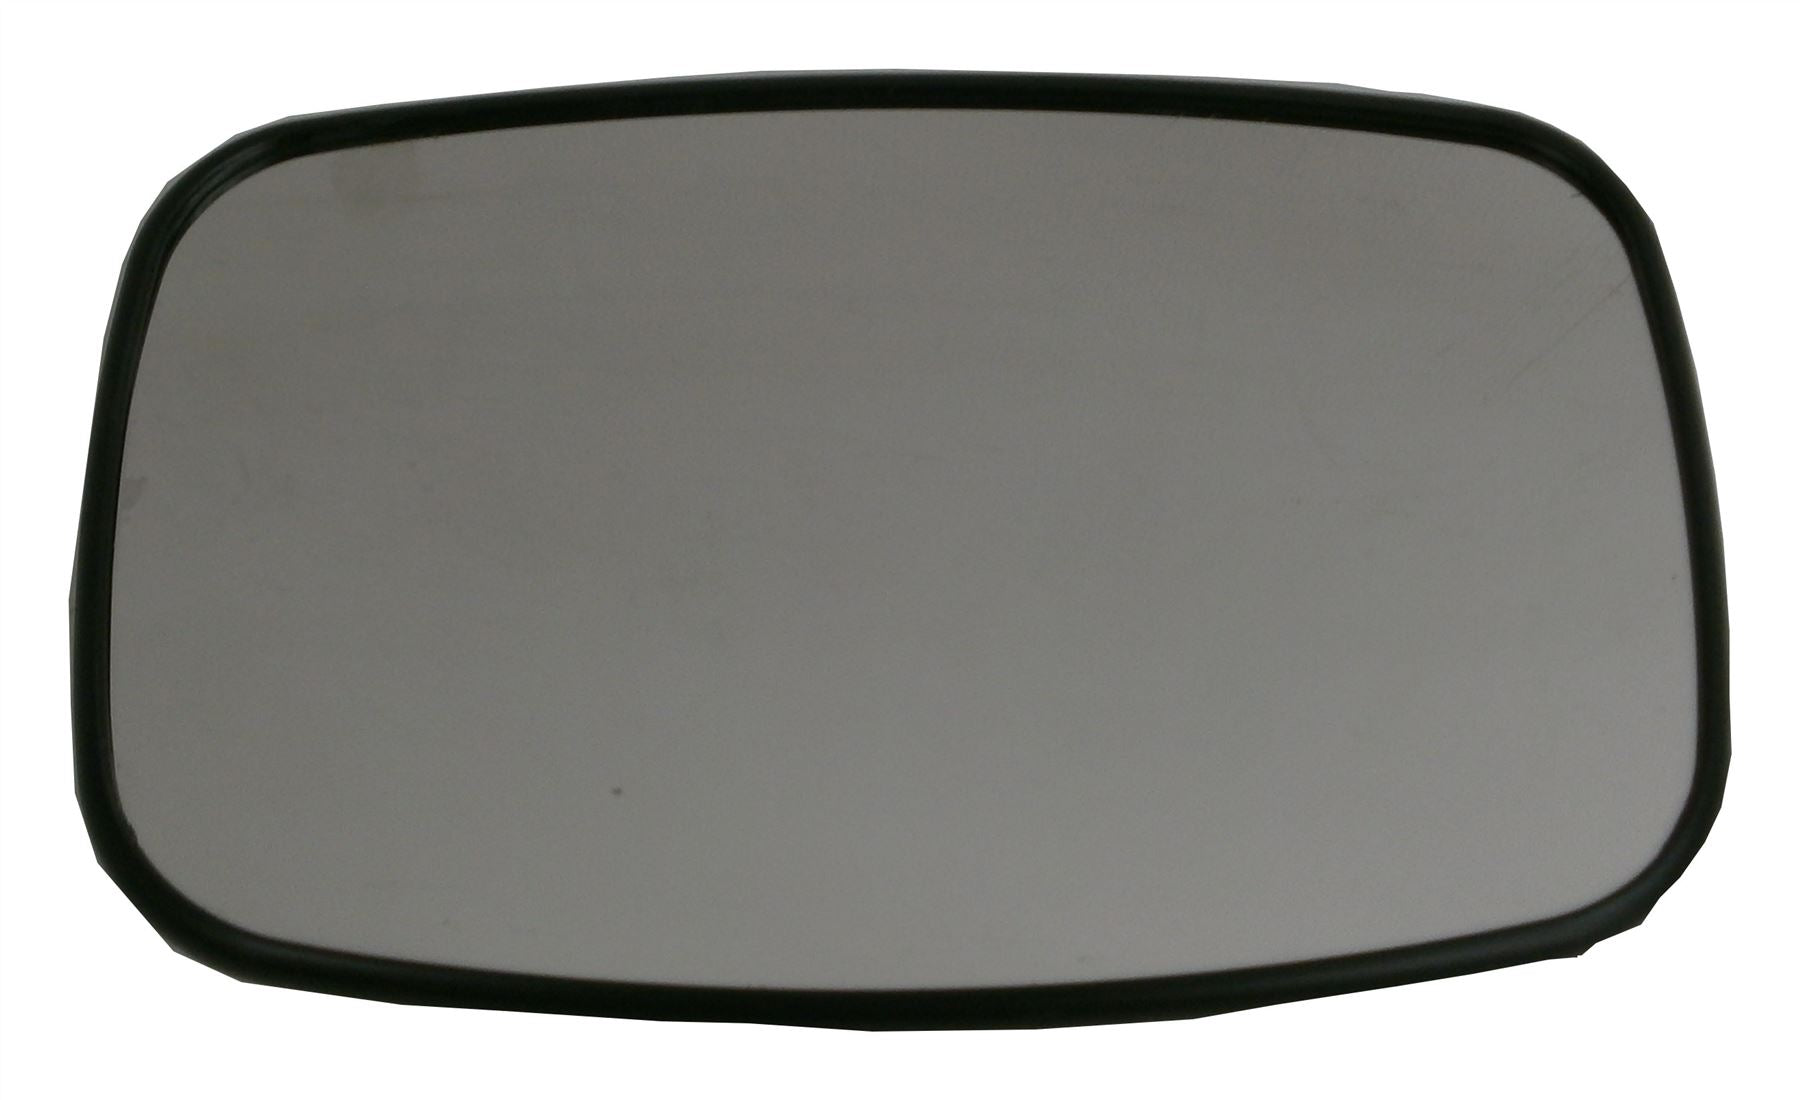 Ford Fiesta Mk.5 1995-2001 Non-Heated Convex Mirror Glass Drivers Side O/S